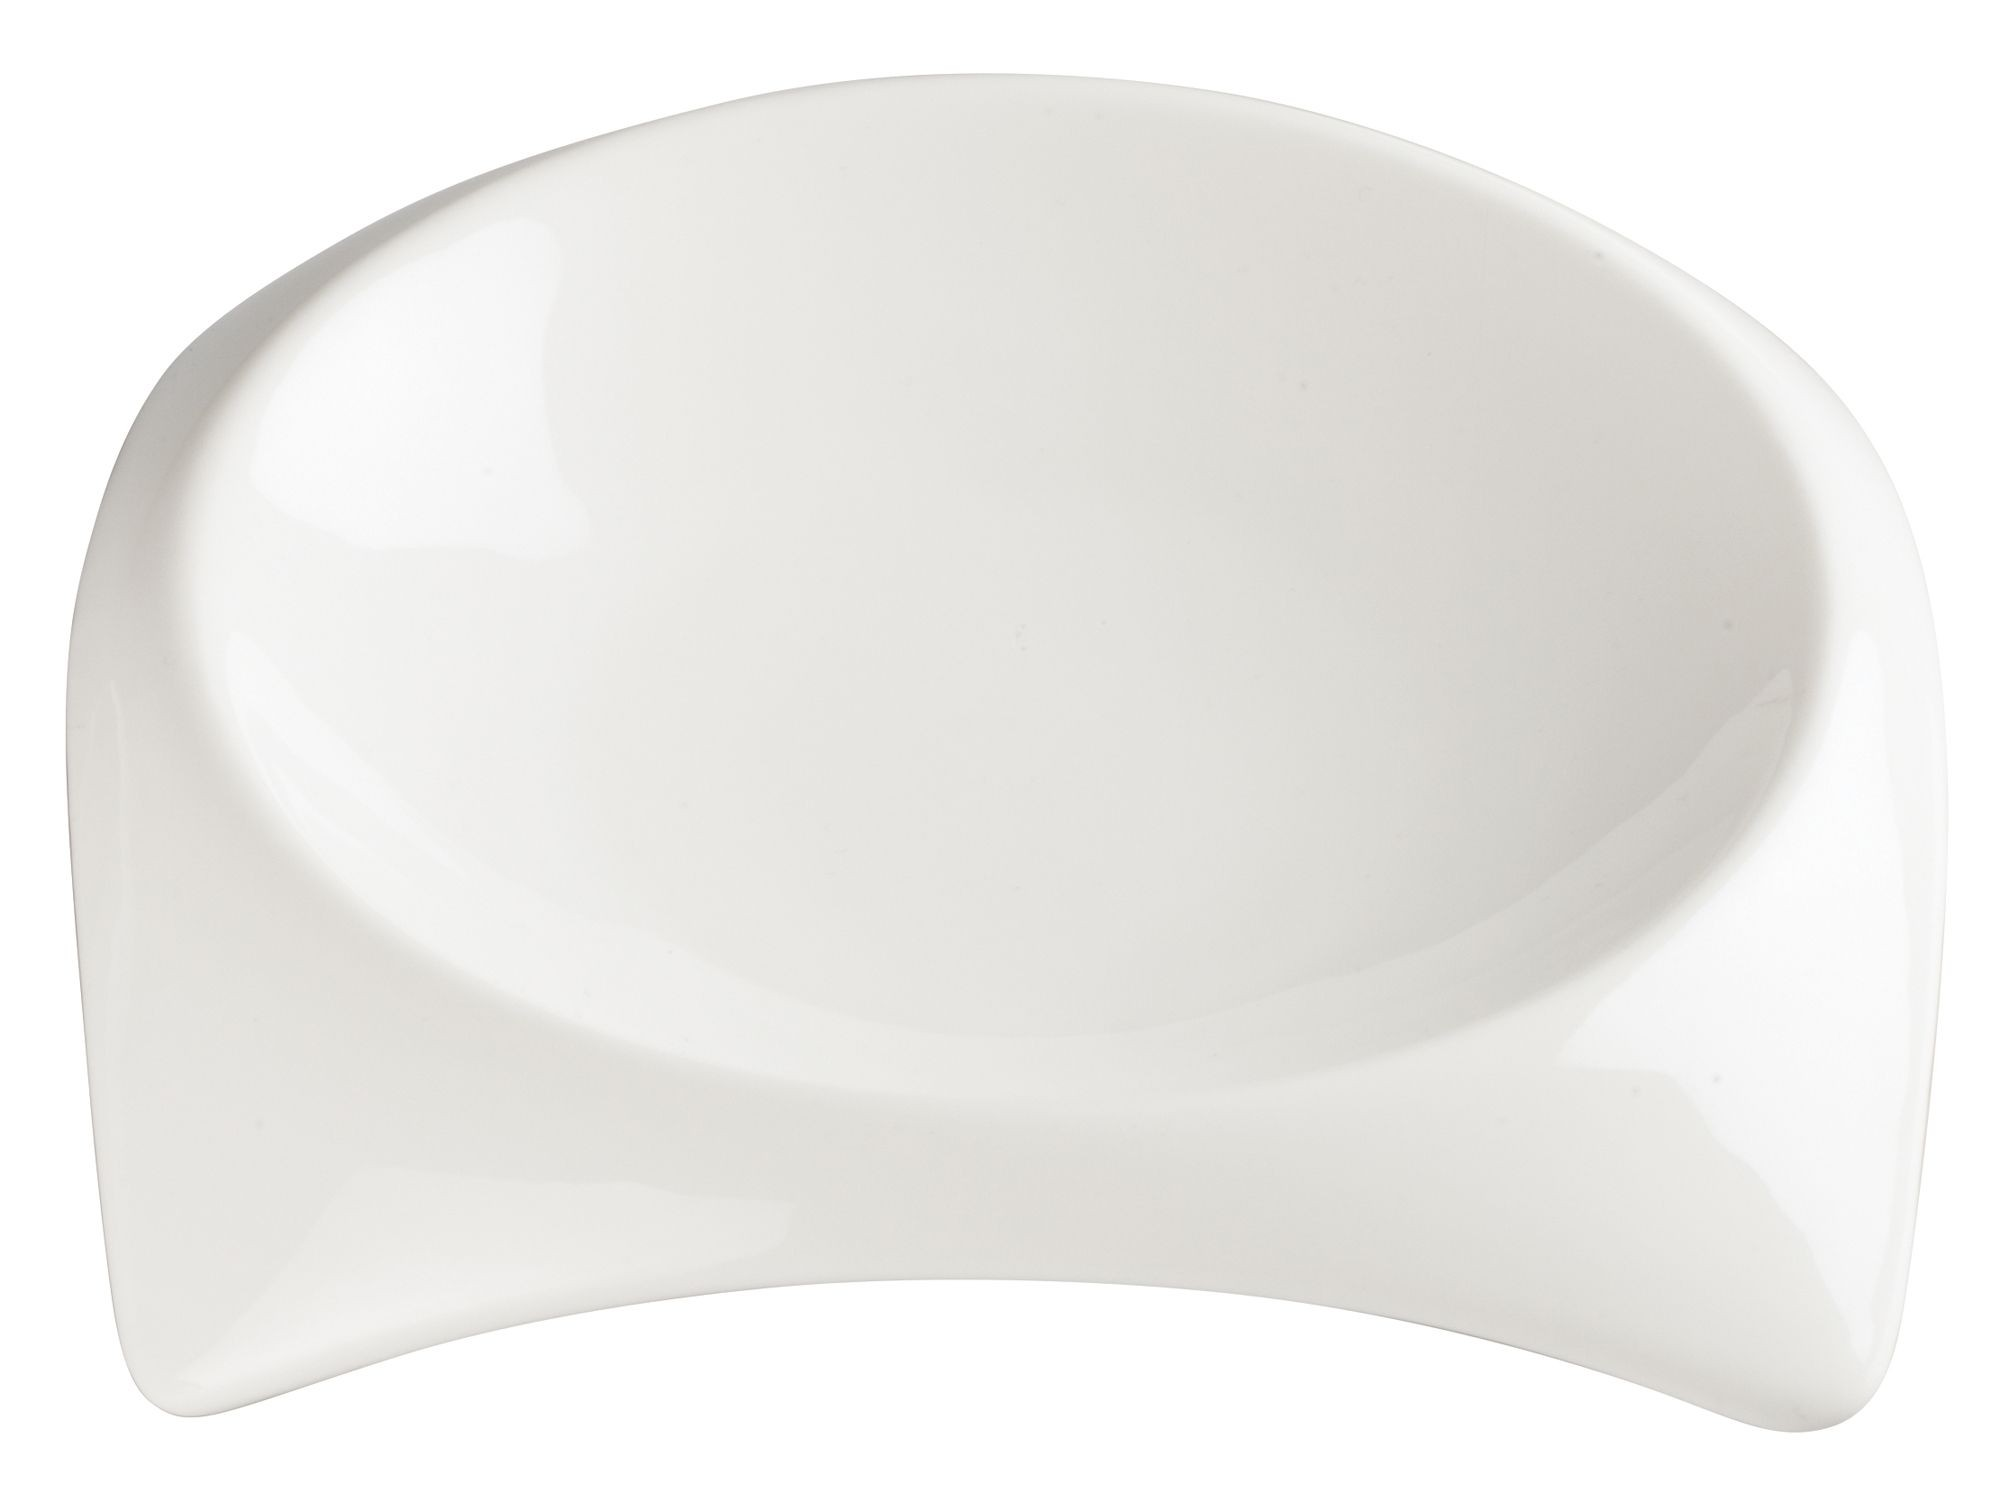 "Winco WDP005-101 Carzola Porcelain Bright White Square Deep Bowl 6-1/4"" Sq (5-1/2"" Dia)"